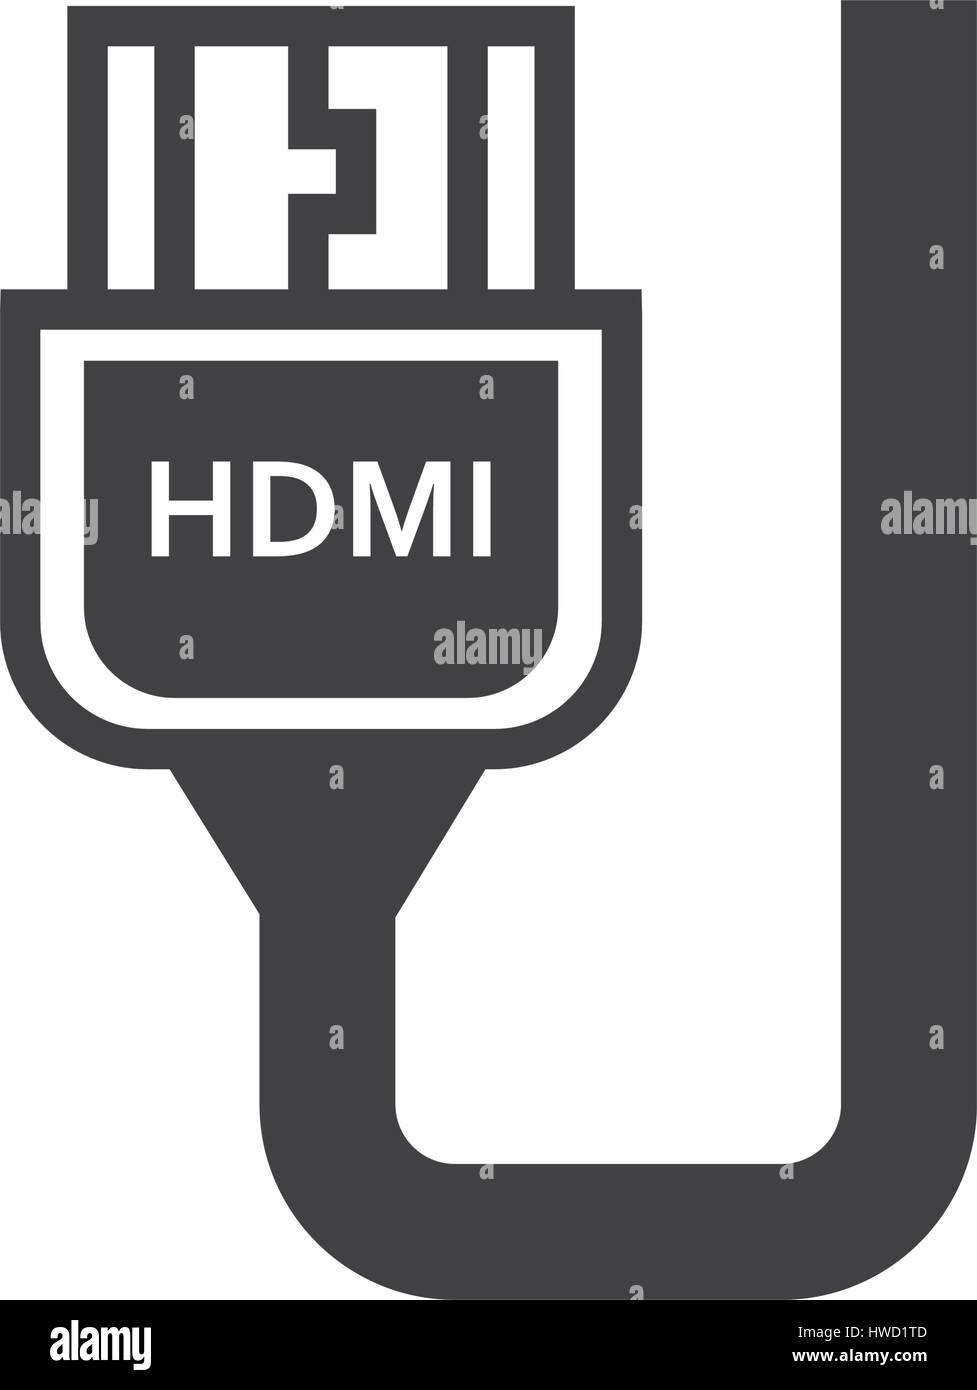 hdmi adapter black icon stock vector image art alamy alamy